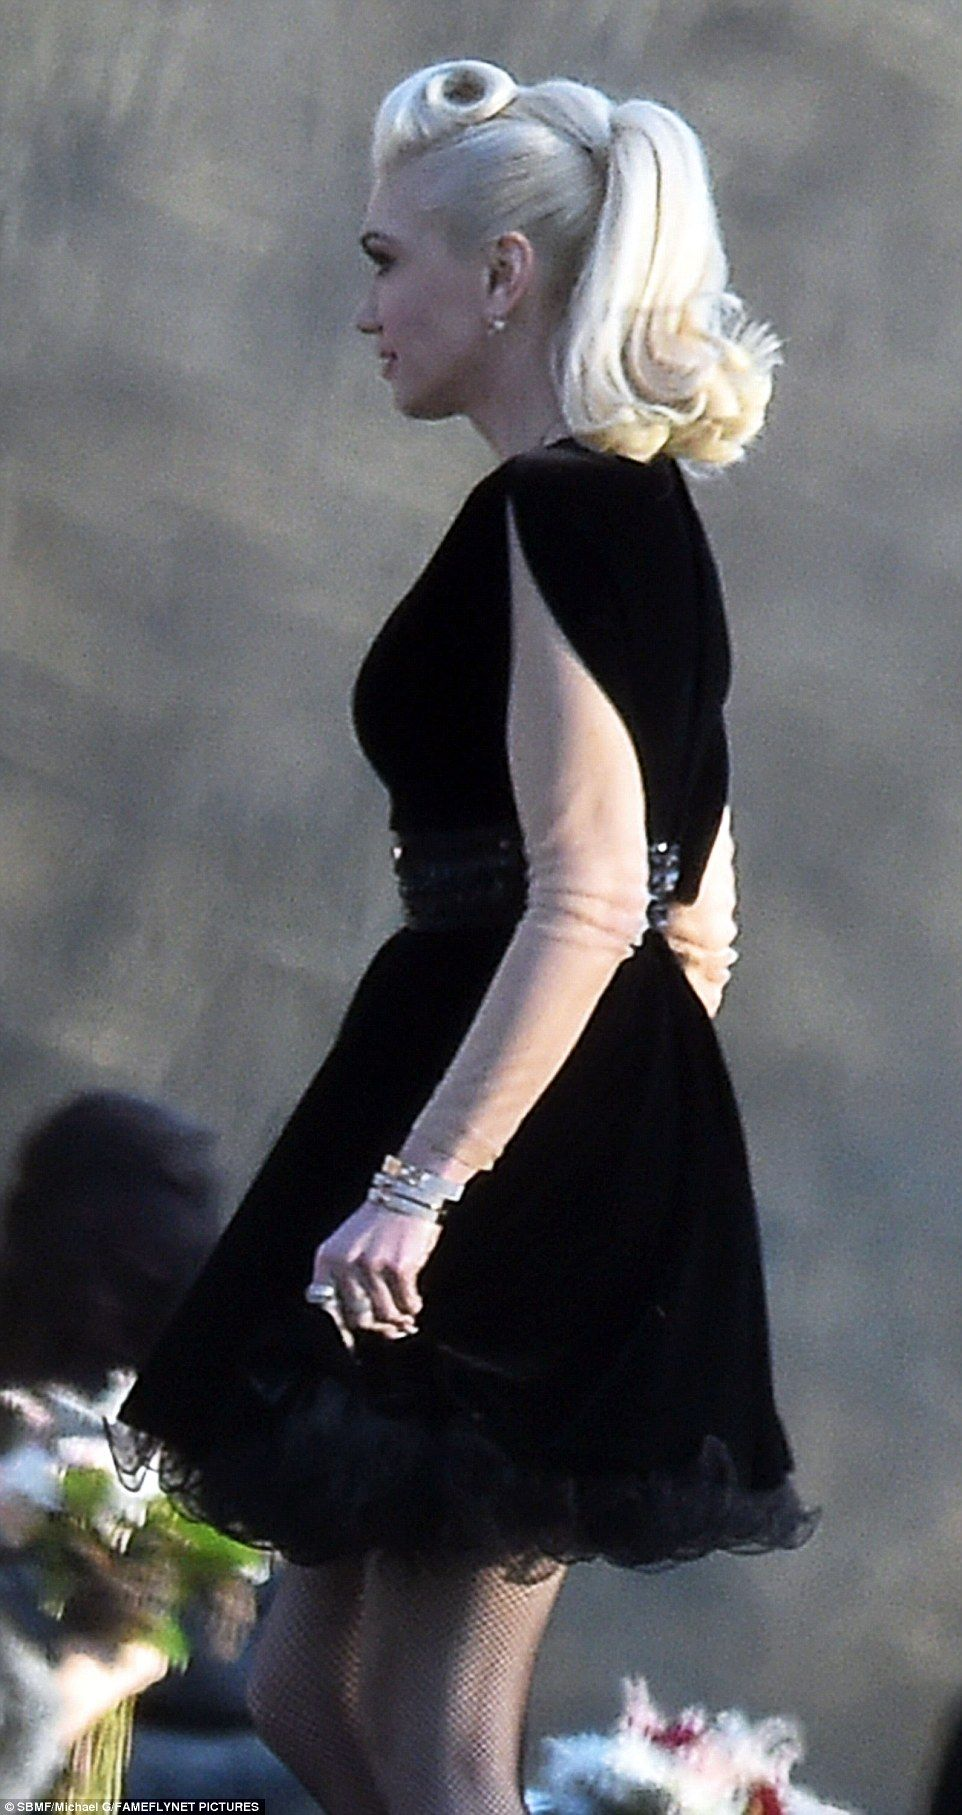 Her own look: The Hollaback Girl donned a black velvet dress with an detailed belt and black sheer frill along the mid-thigh hemline, which showed off her sculpted legs